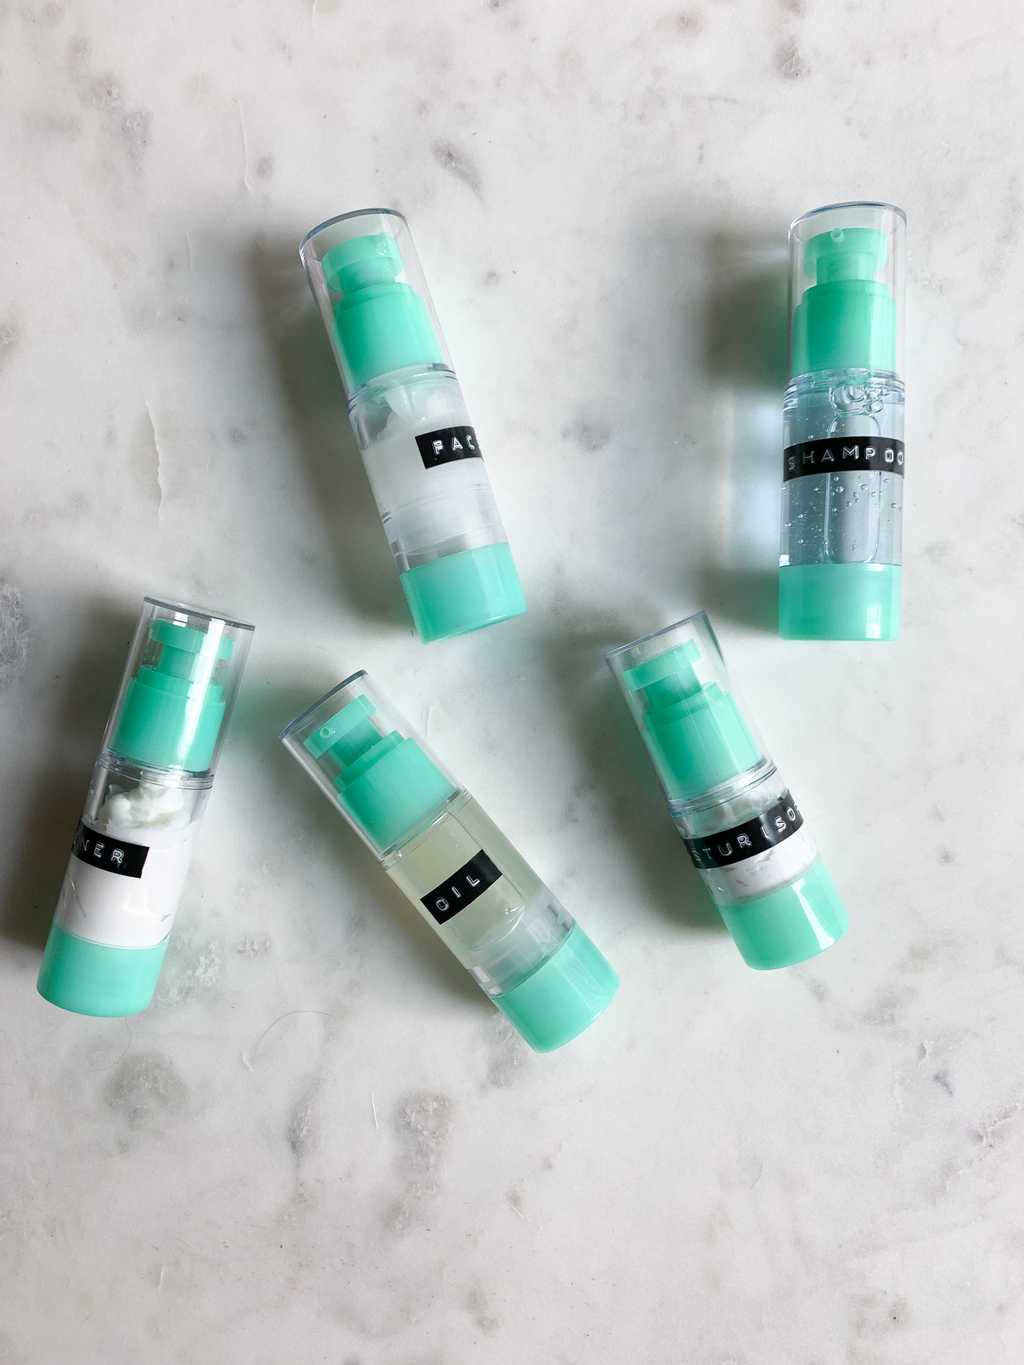 Aqua and clear pump bottles on marble backdrop